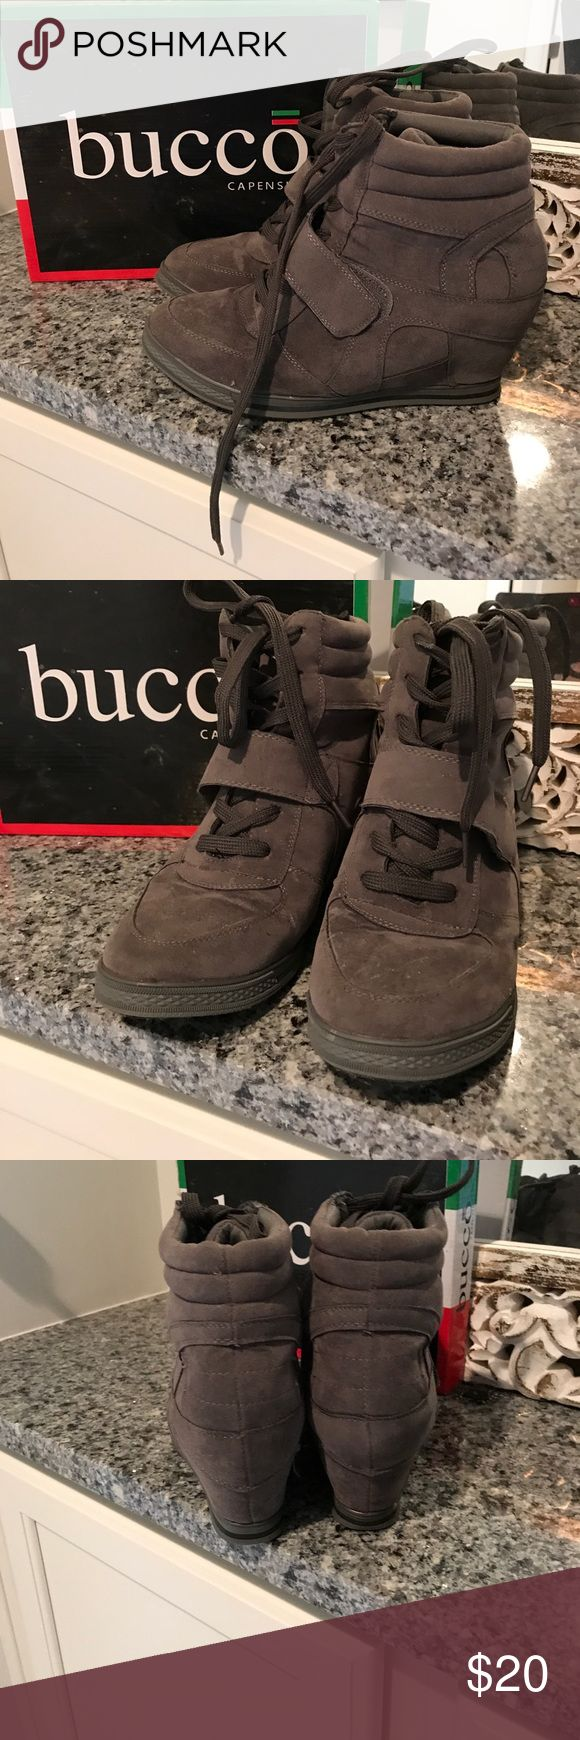 Wedge sneakers. Great condition. Bucco wedge sneakers worn once. I purchased these in Italy. Bacco Bucci Shoes Sneakers